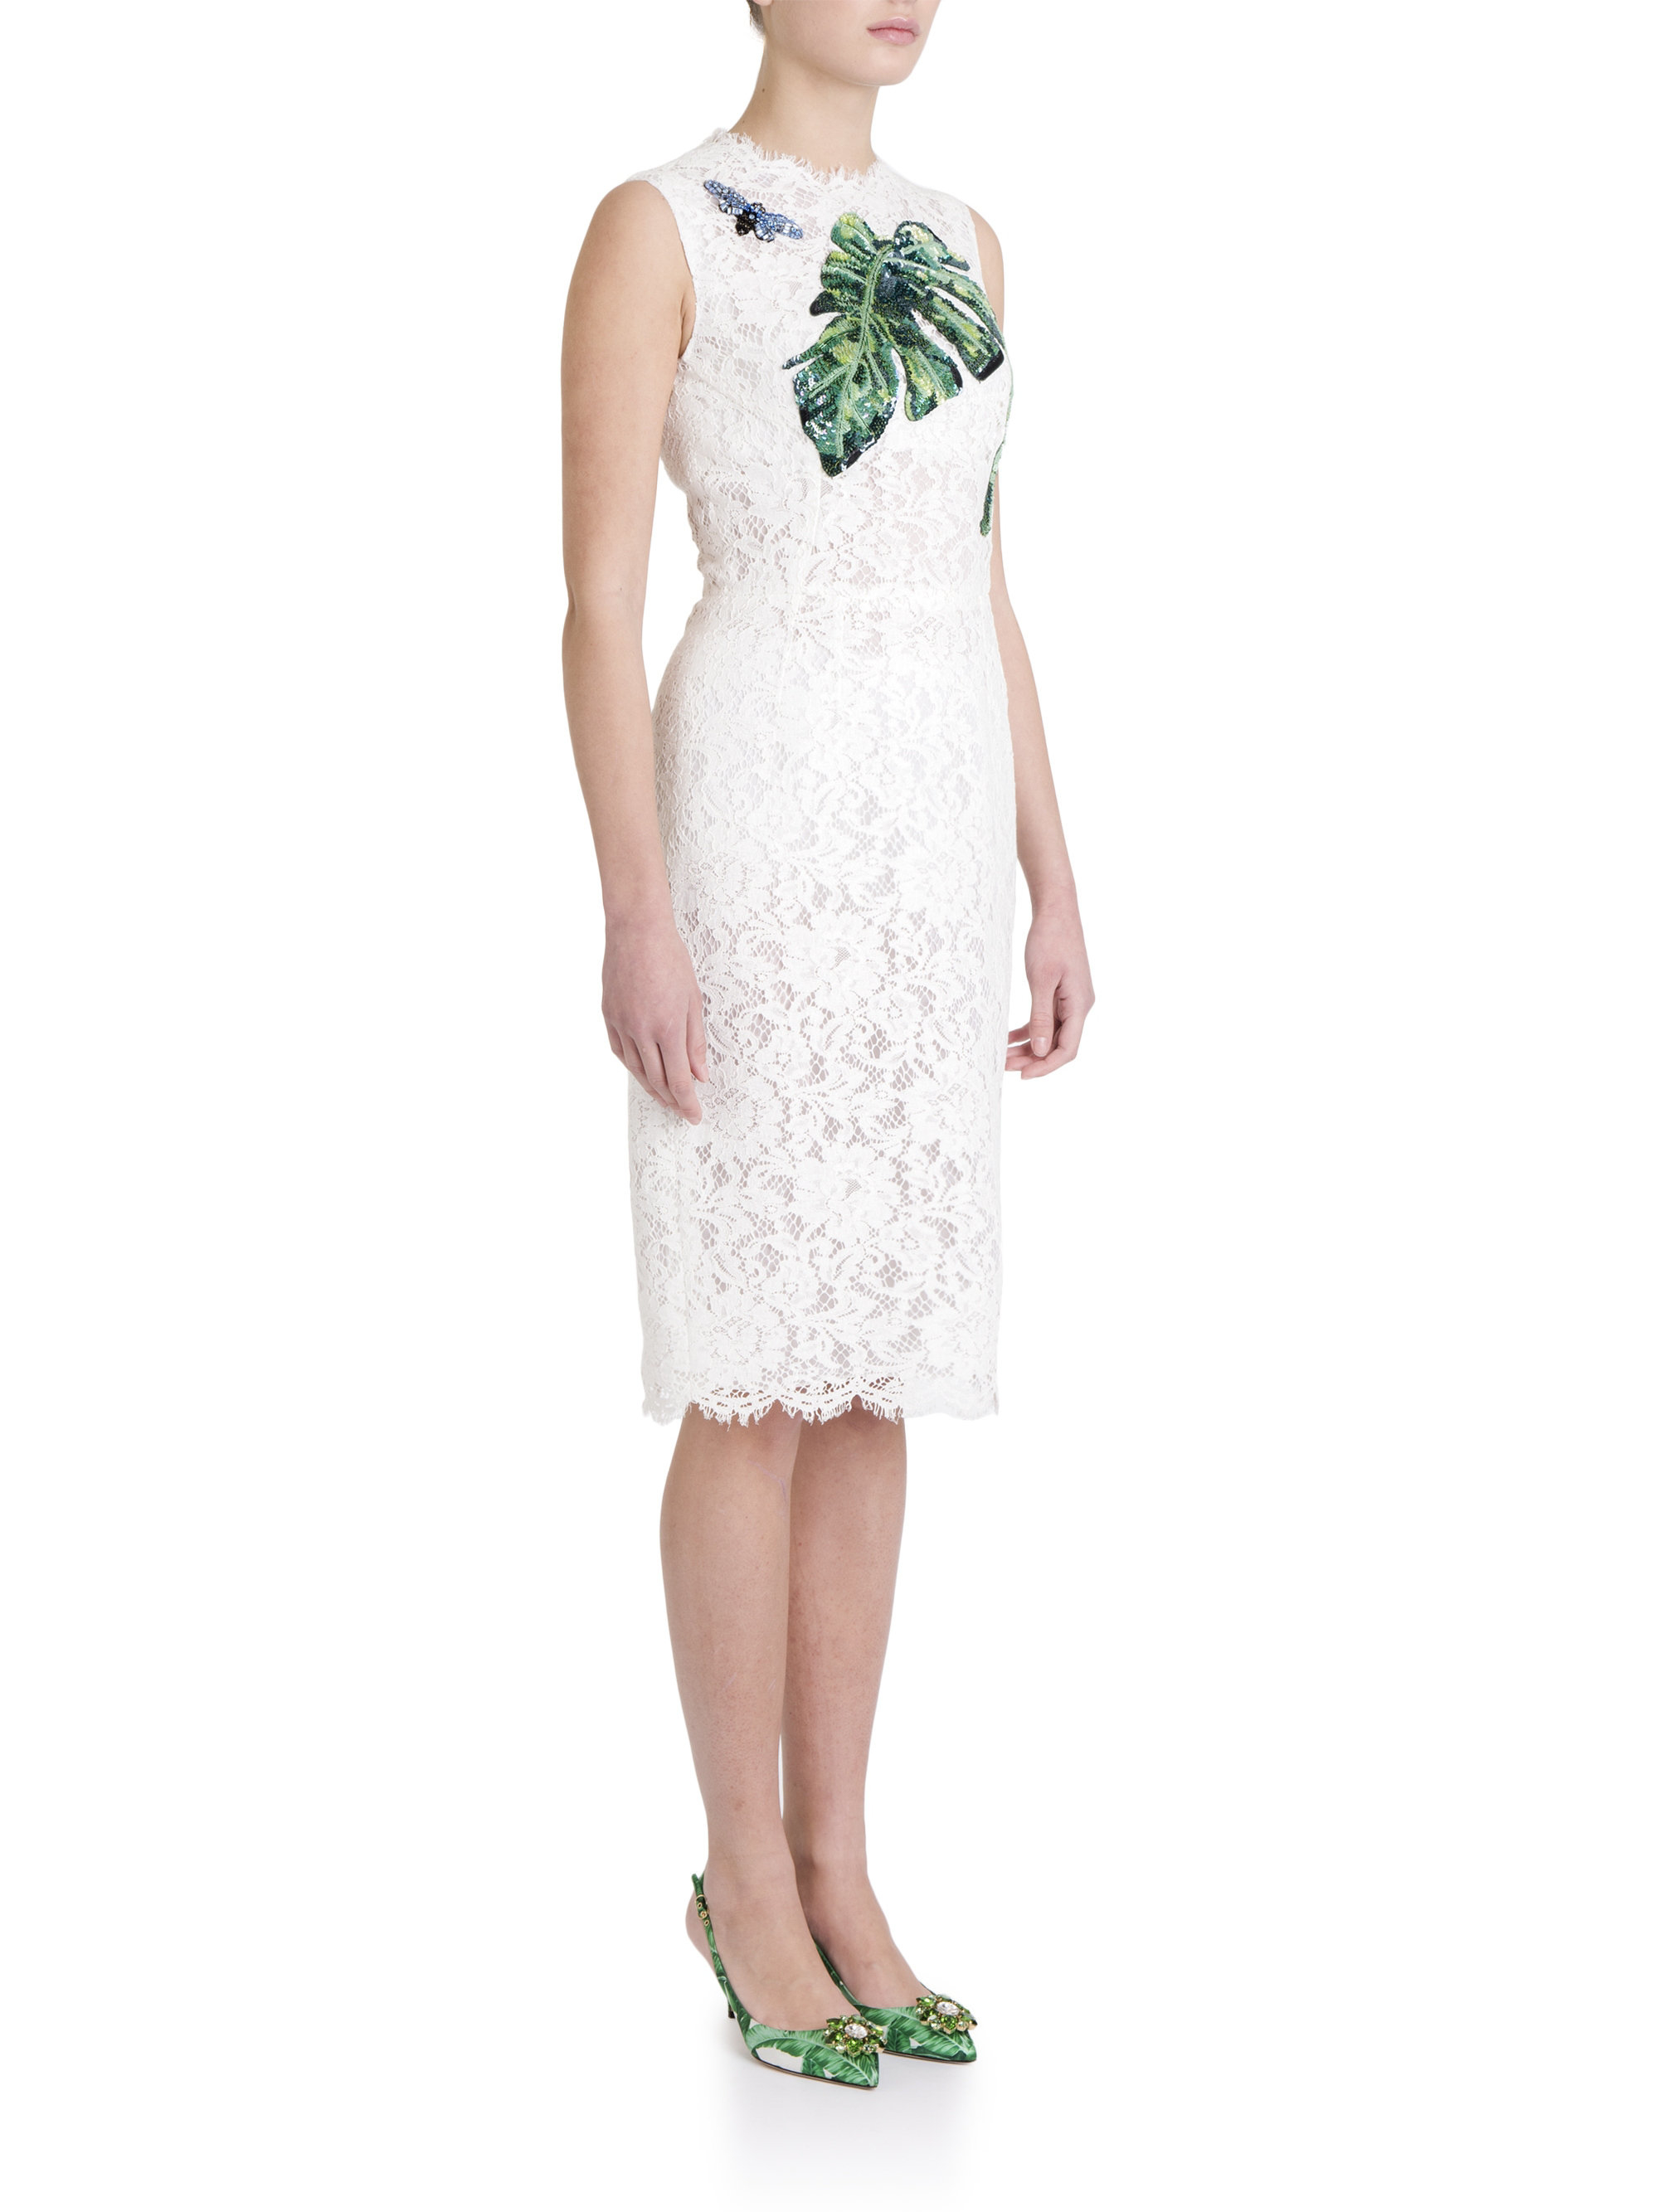 Dolce gabbana jackie leaf embroidered lace dress in